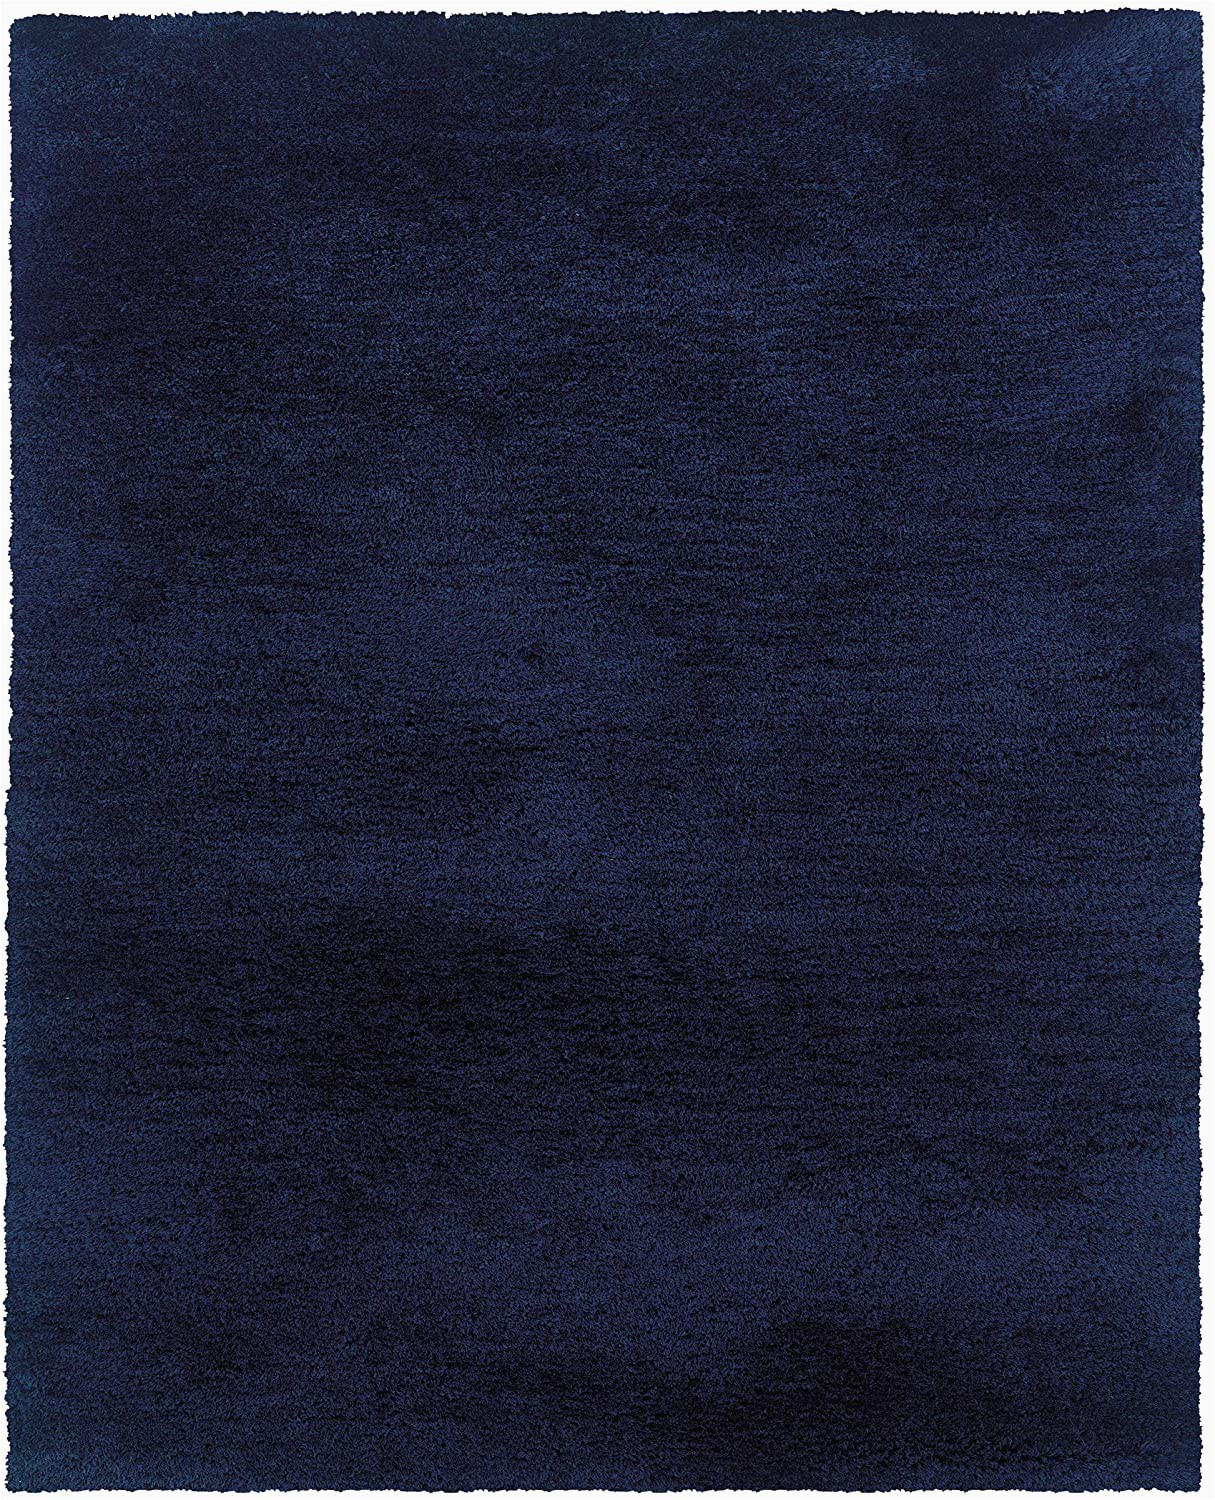 5ft by 7ft area Rug Amazon Living fort Colman 5ft X 7ft area Blue solid